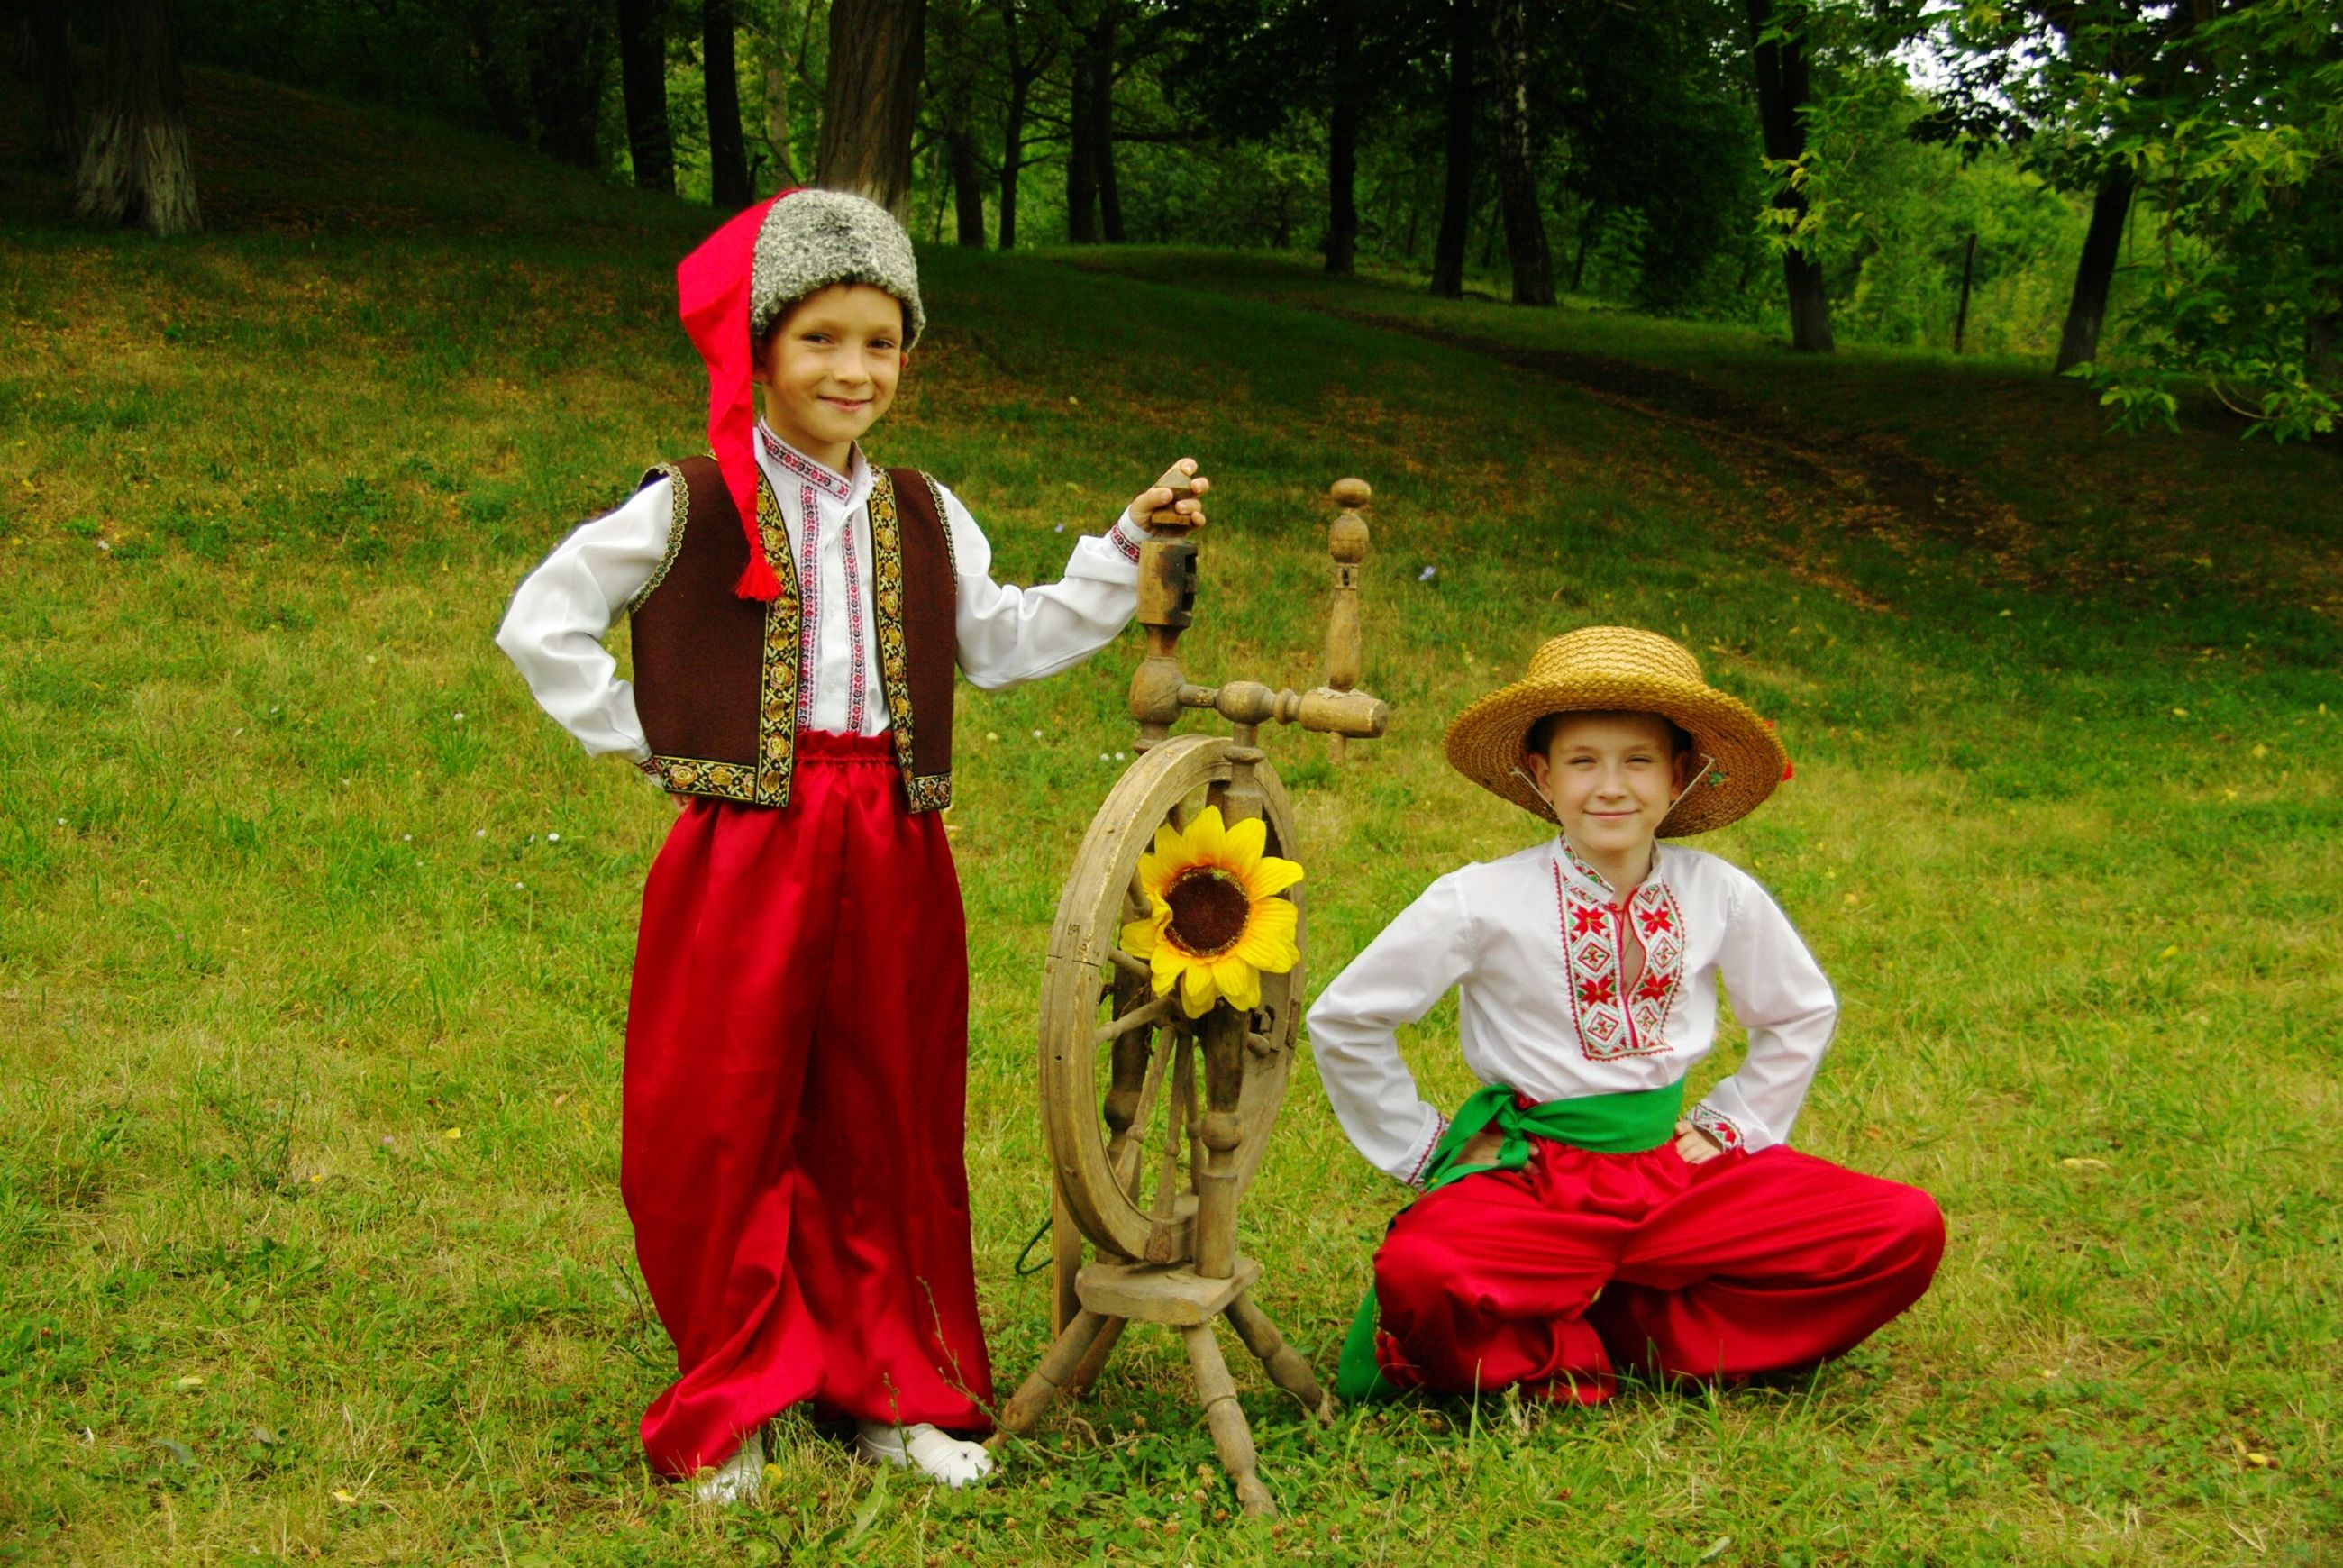 looking at camera, portrait, childhood, grass, full length, dressing up, hat, traditional clothing, togetherness, children only, halloween, girls, front view, outdoors, tradition, friendship, smiling, child, witch, day, tree, standing, people, clown, adult